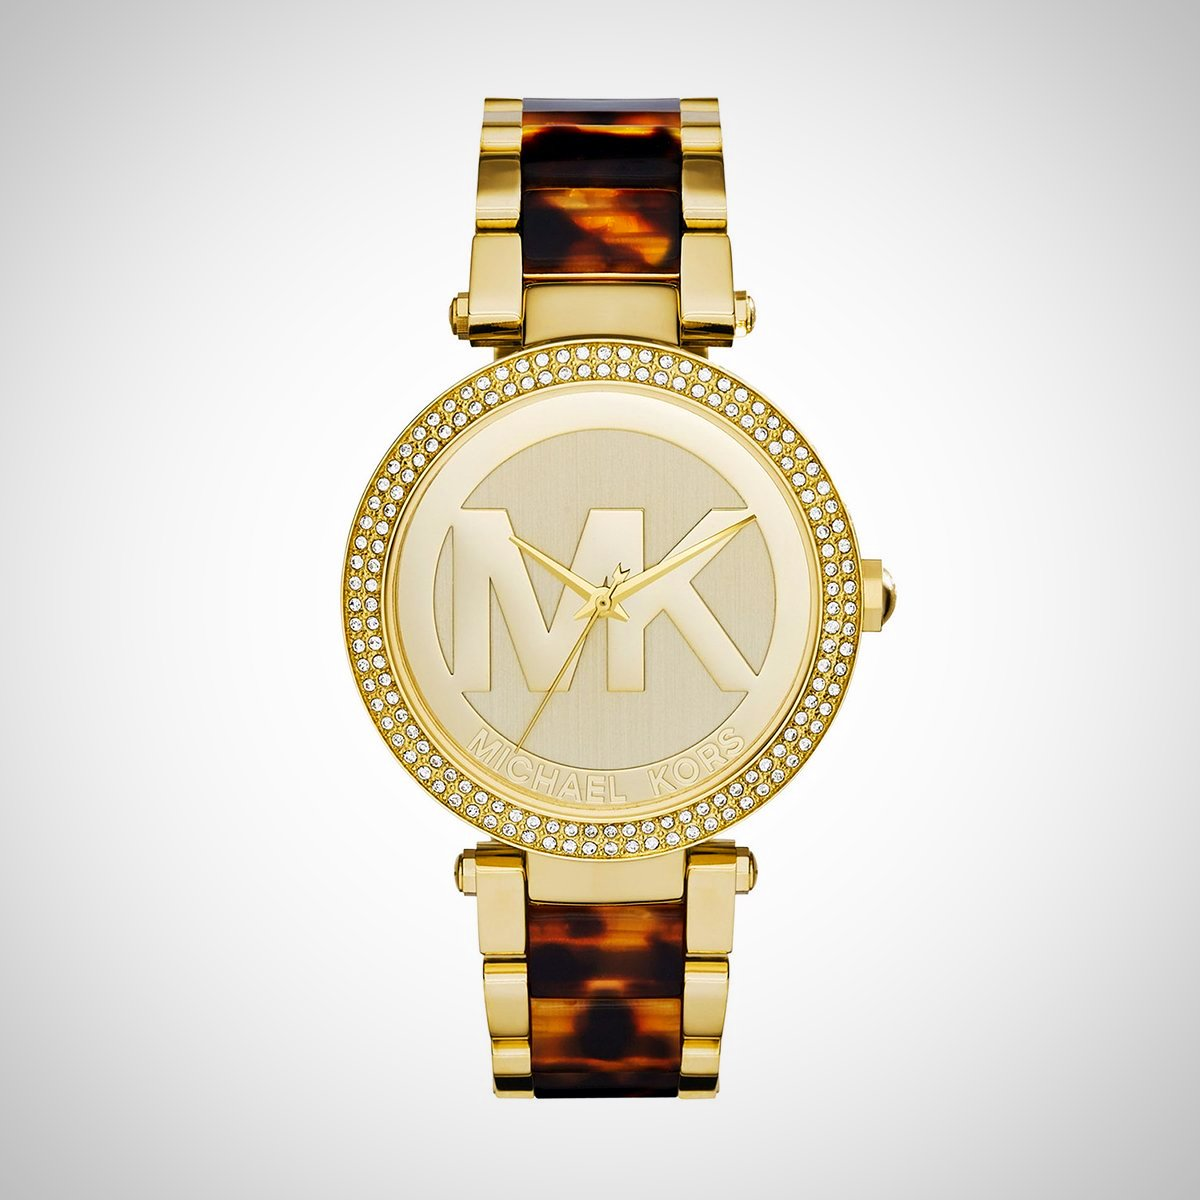 Michael Kors MK6109 Parker Ladies' Champagne Dial Gold-tone and Tortoise-shell Acetate Watch